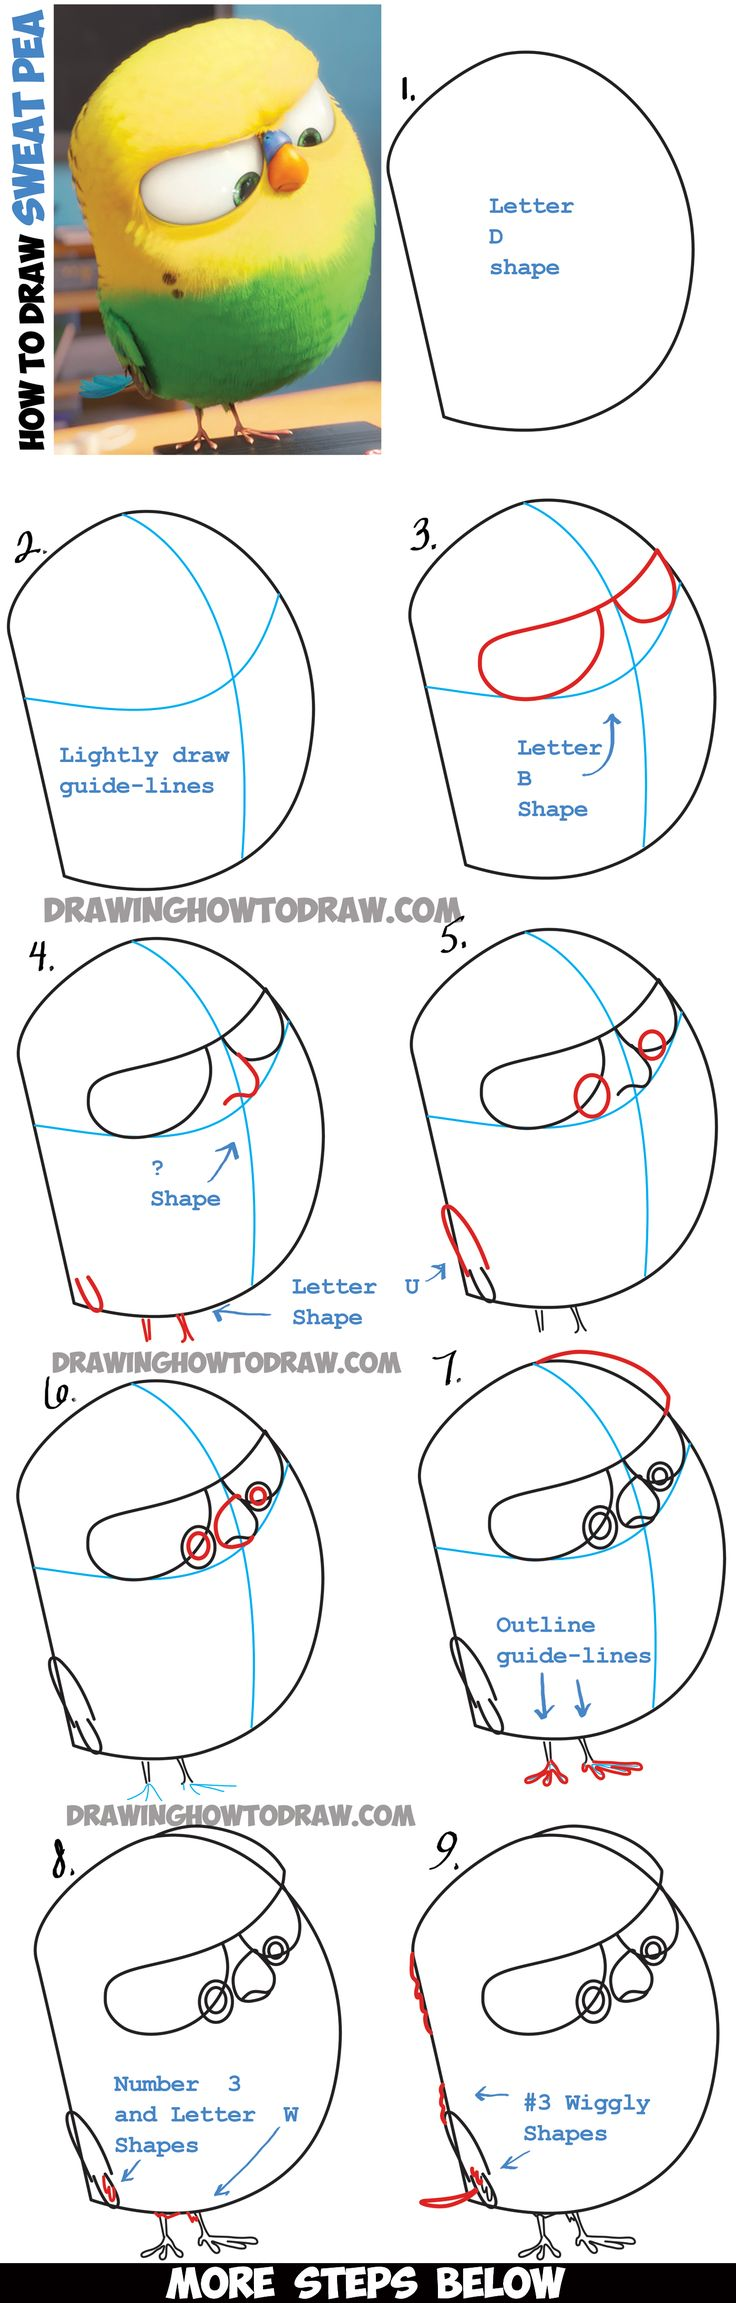 38 best drawing images on pinterest drawing disney how to draw howtodraw sweat pea from thesecretlifeofpetsg 14004382 buycottarizona